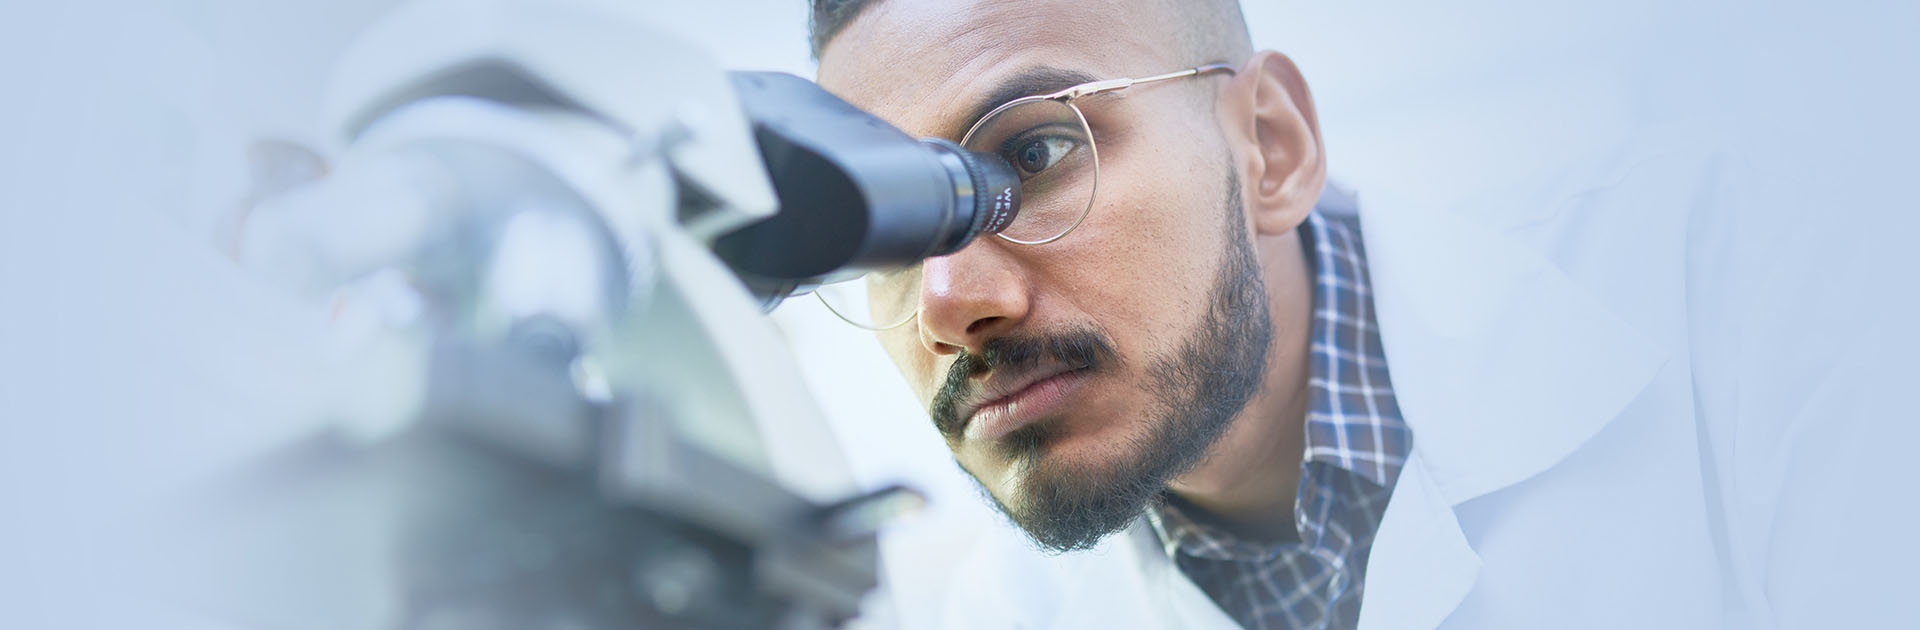 Man in white uniform looking through microscope